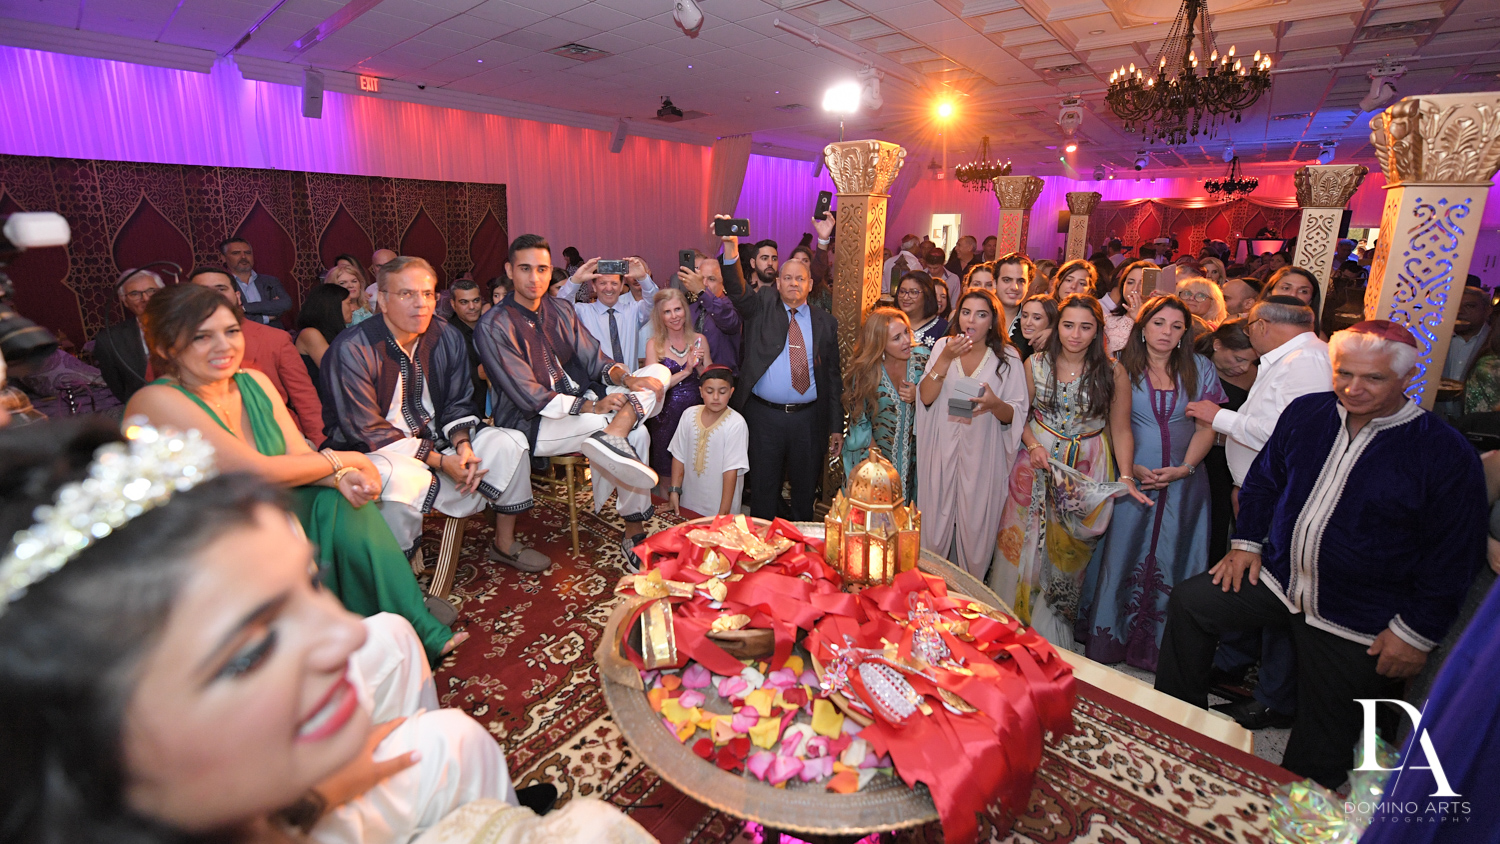 wedding traditions at Authentic Morrocan Jewish Henna Party by Domino Arts Photography